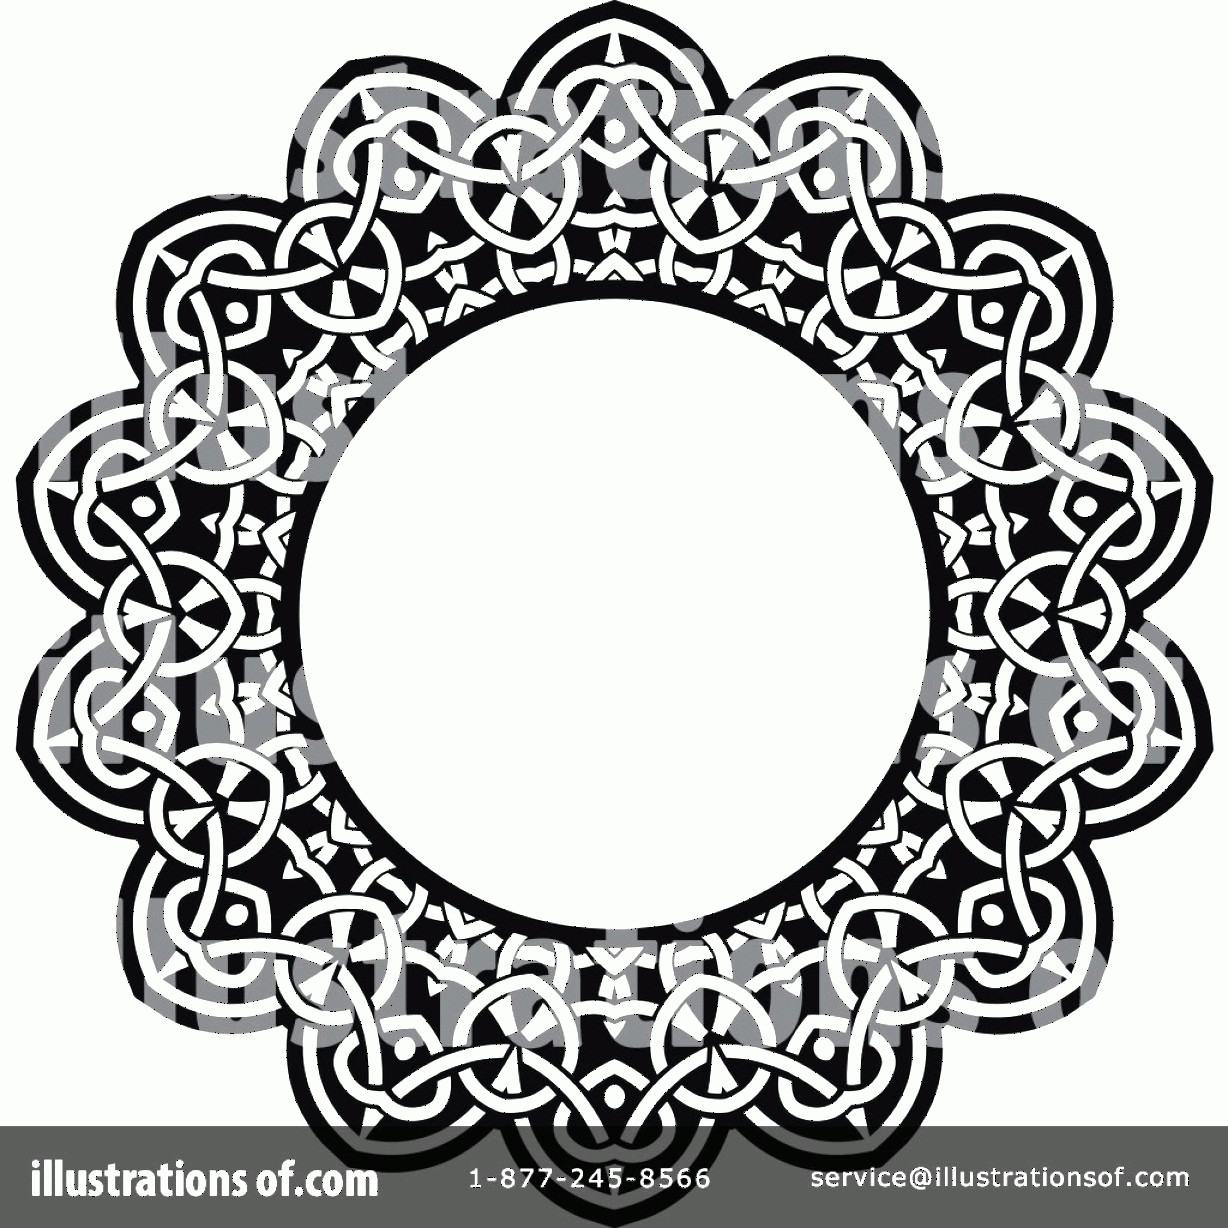 Lace Vector Images Free Clip Art: Royalty Free Lace Clipart Illustration